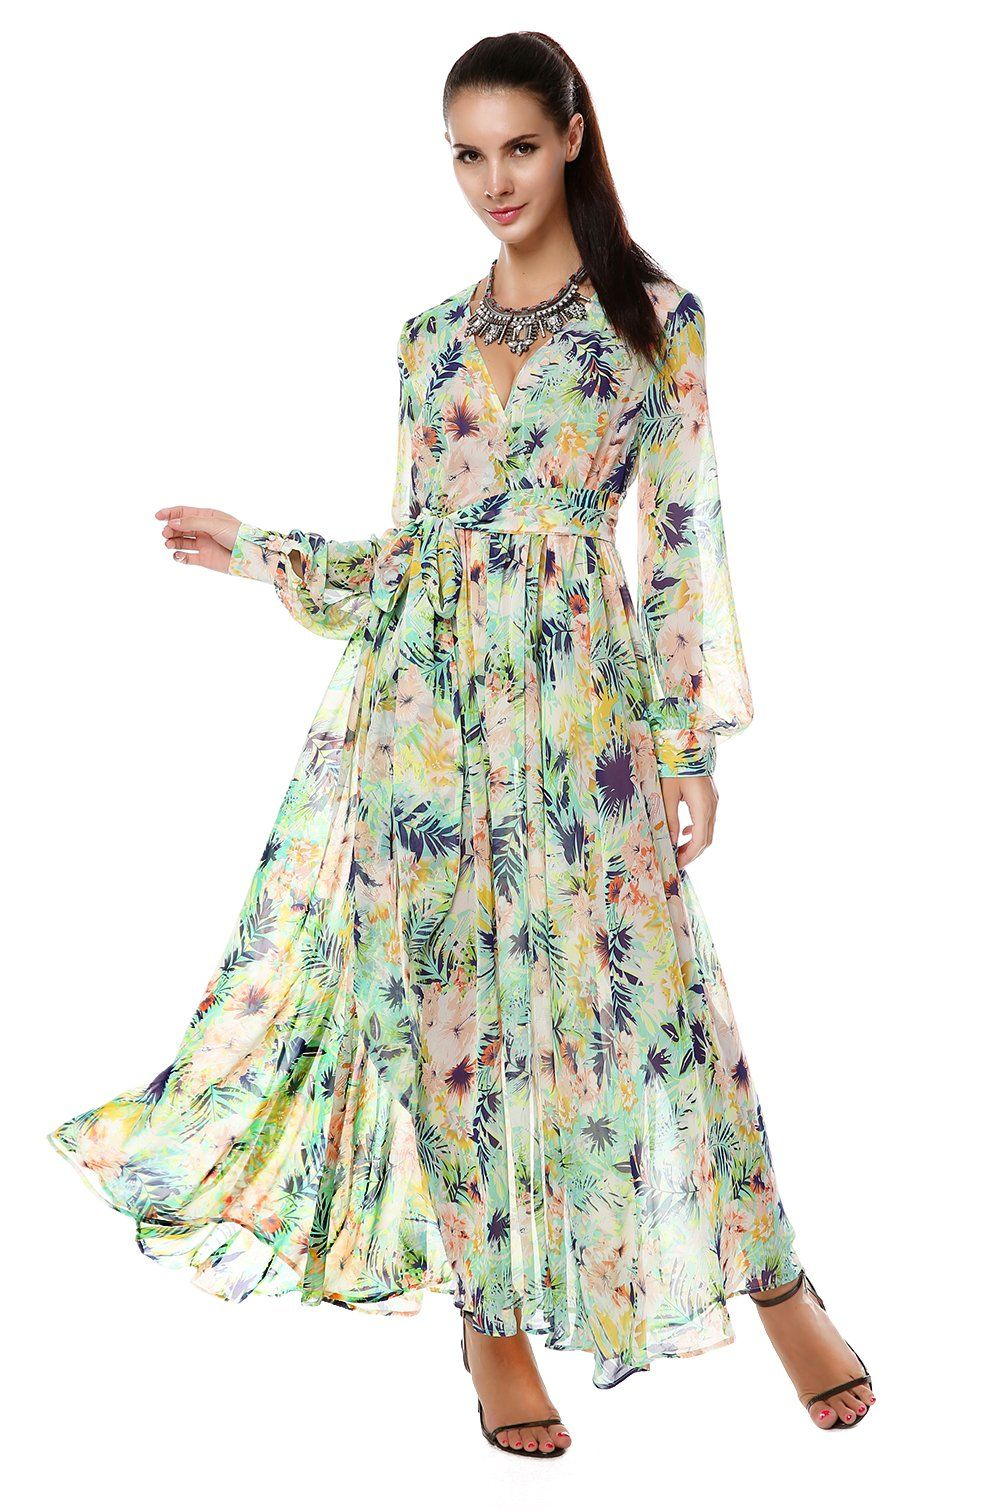 42981cb2d022 ACEVOG Women Summer Tropical Flower Printed Chiffon Long Sleeve Beach Dress  (S